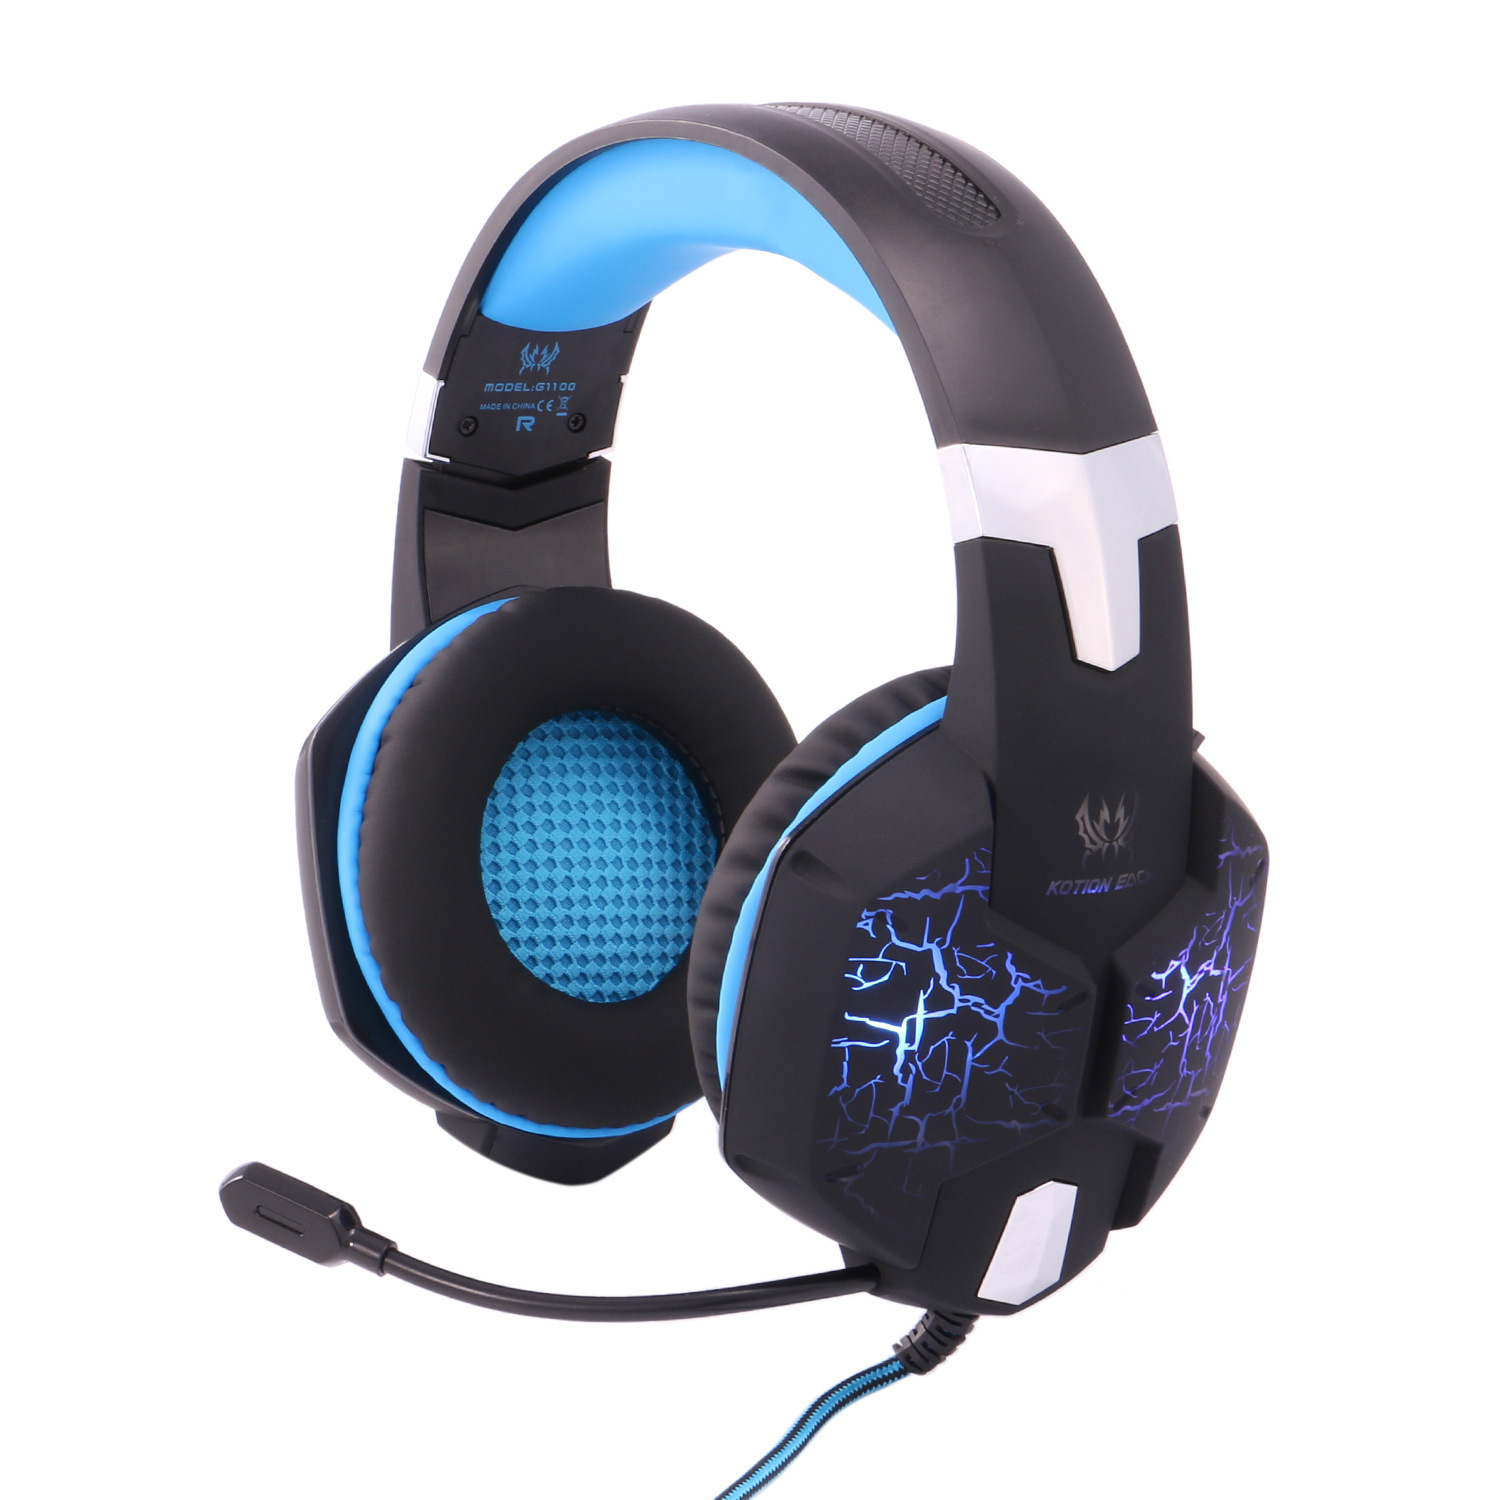 G1100 Vibration Function Professional Gaming Headphone Games Headset With Mic Stereo Bass Breathing LED Light For PC Gamer each g8200 gaming headphone 7 1 surround usb vibration game headset headband earphone with mic led light for fone pc gamer ps4